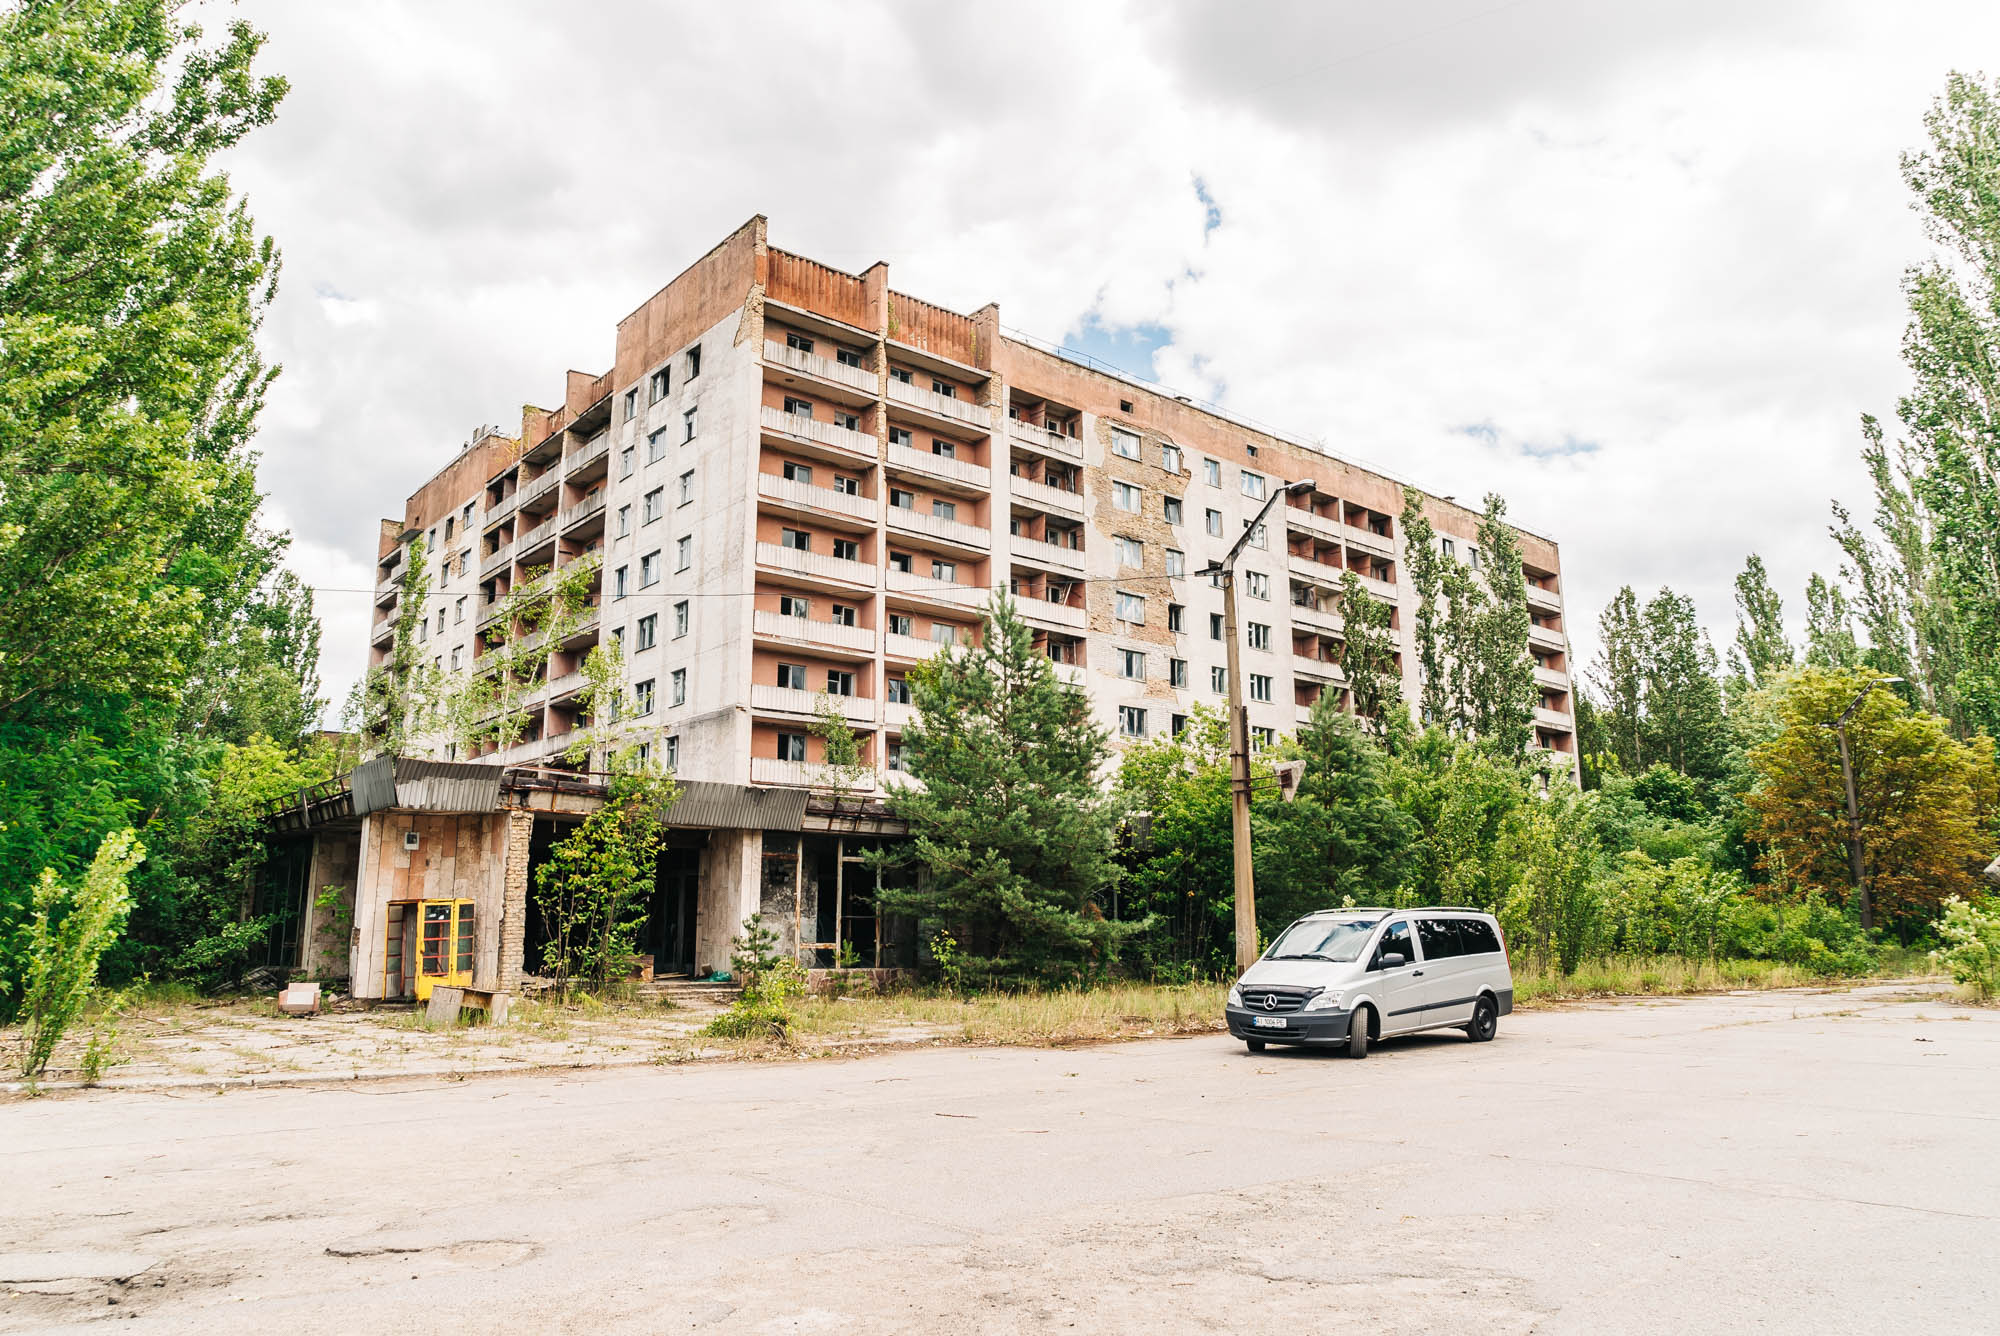 Abandoned apartment building of Pripyat